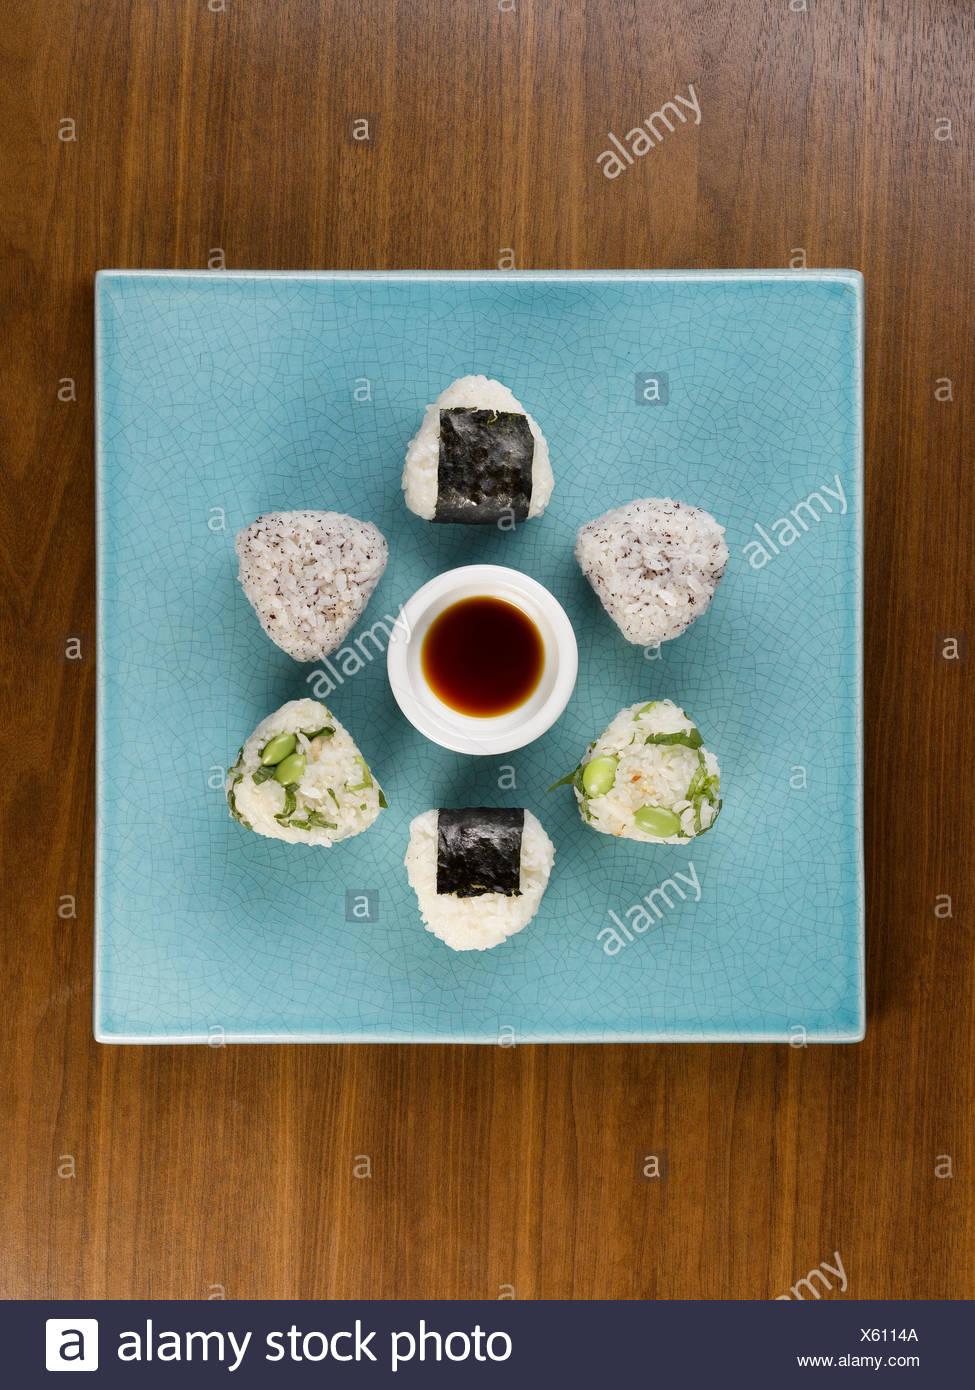 Aerial view of plate of sushi Stock Photo